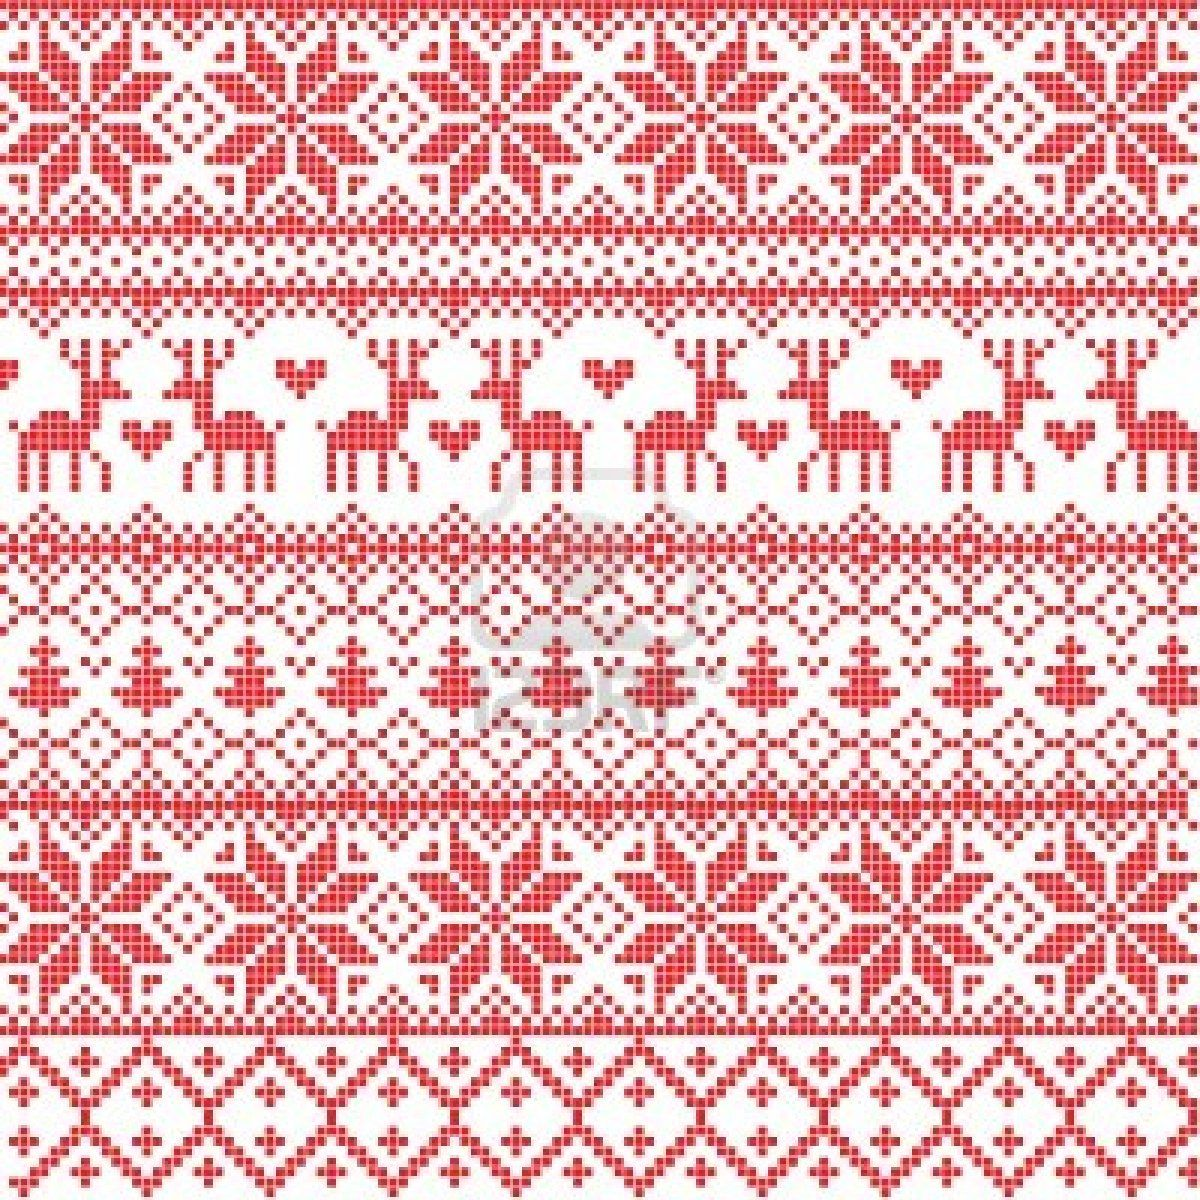 Knitting Charts Christmas : Illustrated traditional red nordic pattern royalty free